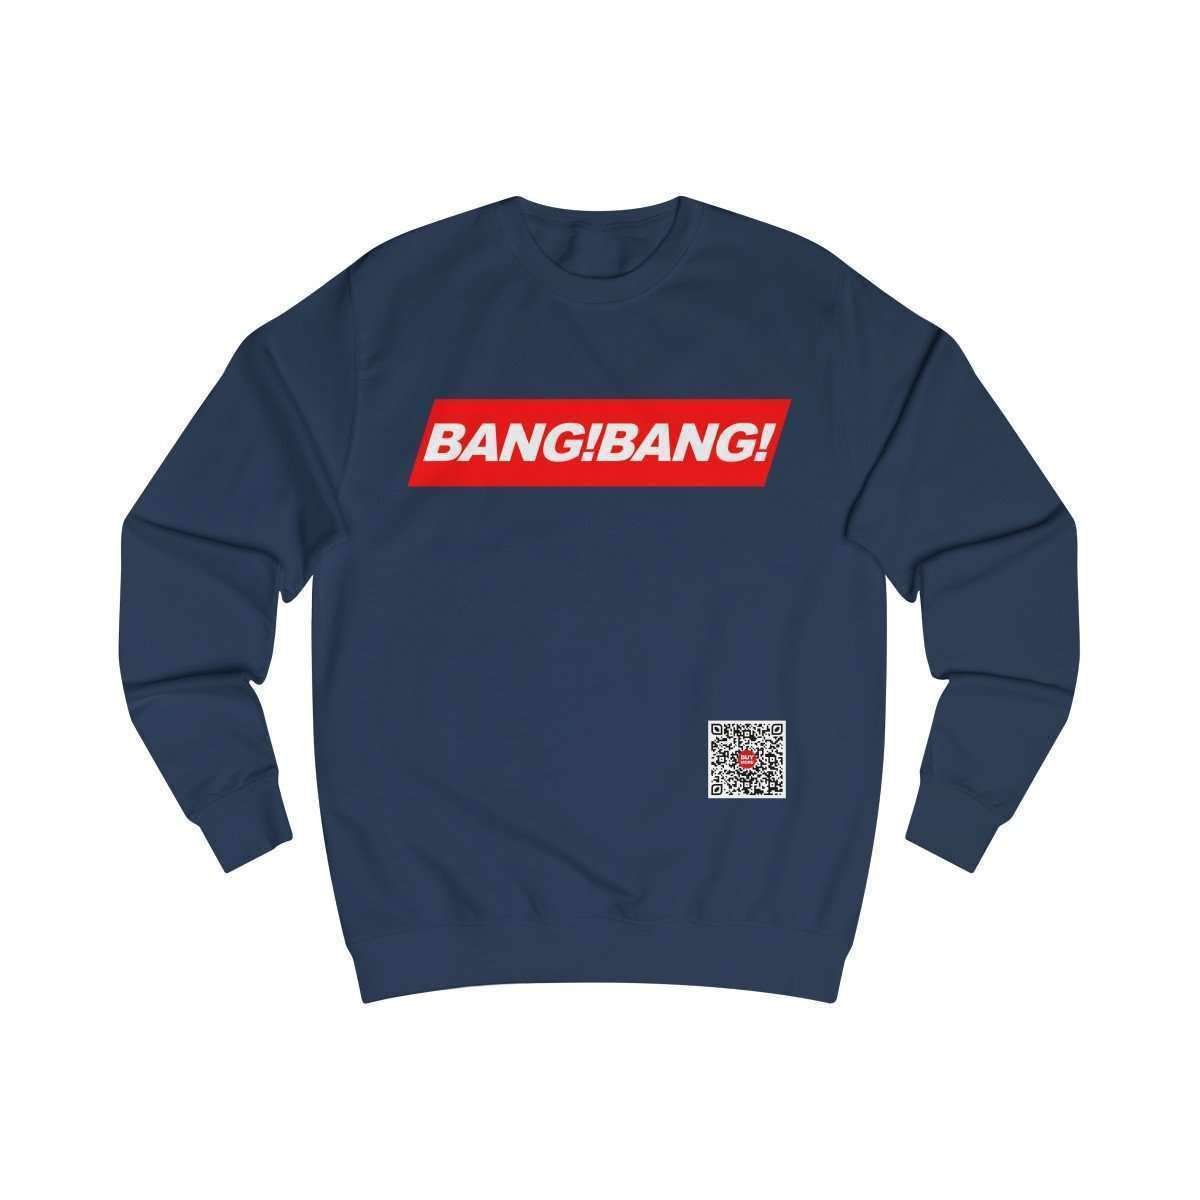 *BANGBANG Men's Sweatshirt